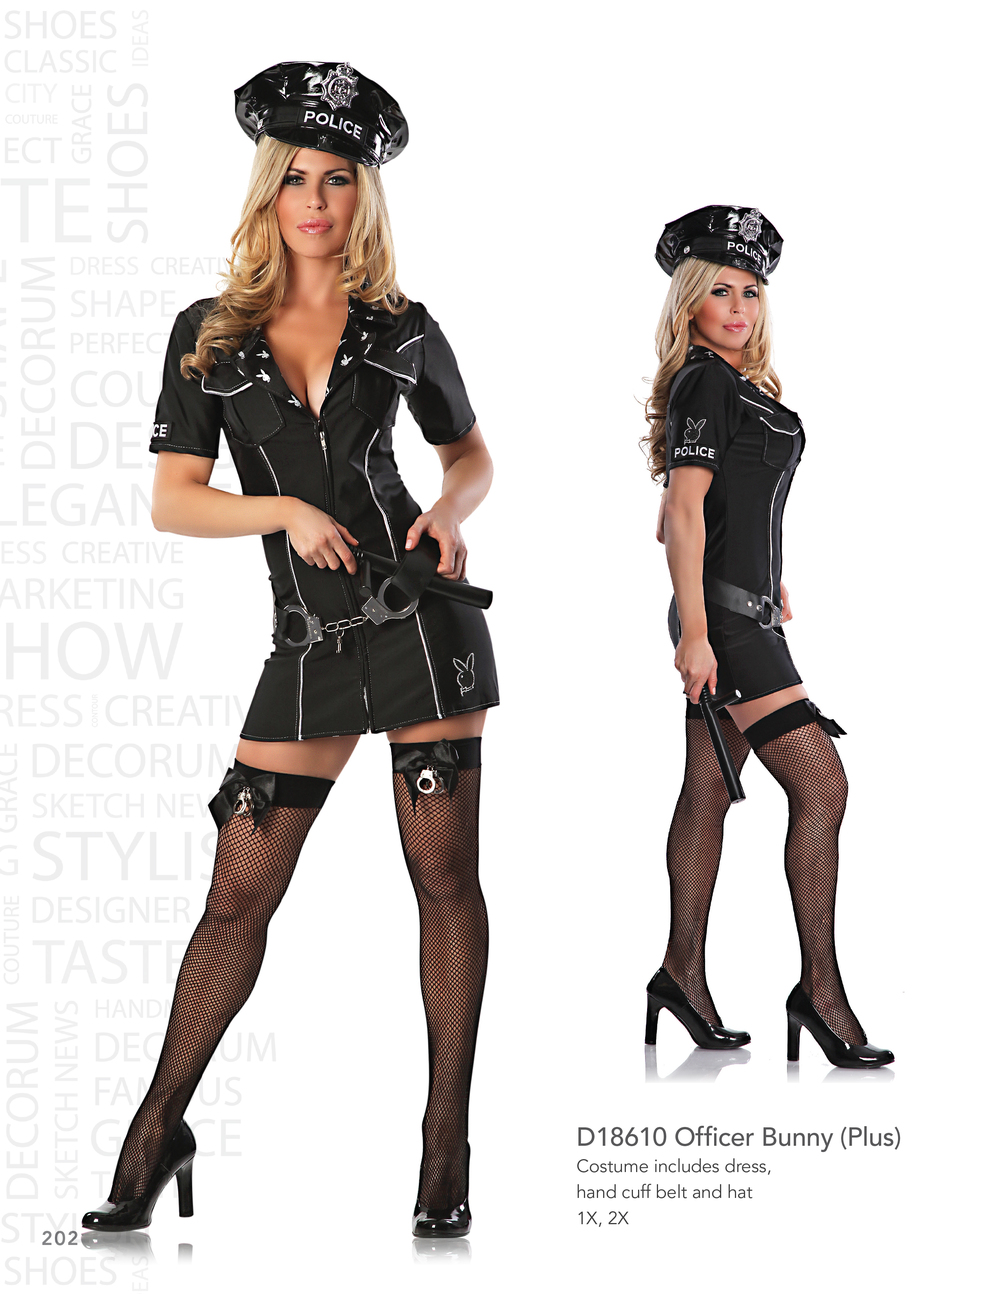 D18610 Officer Bunny